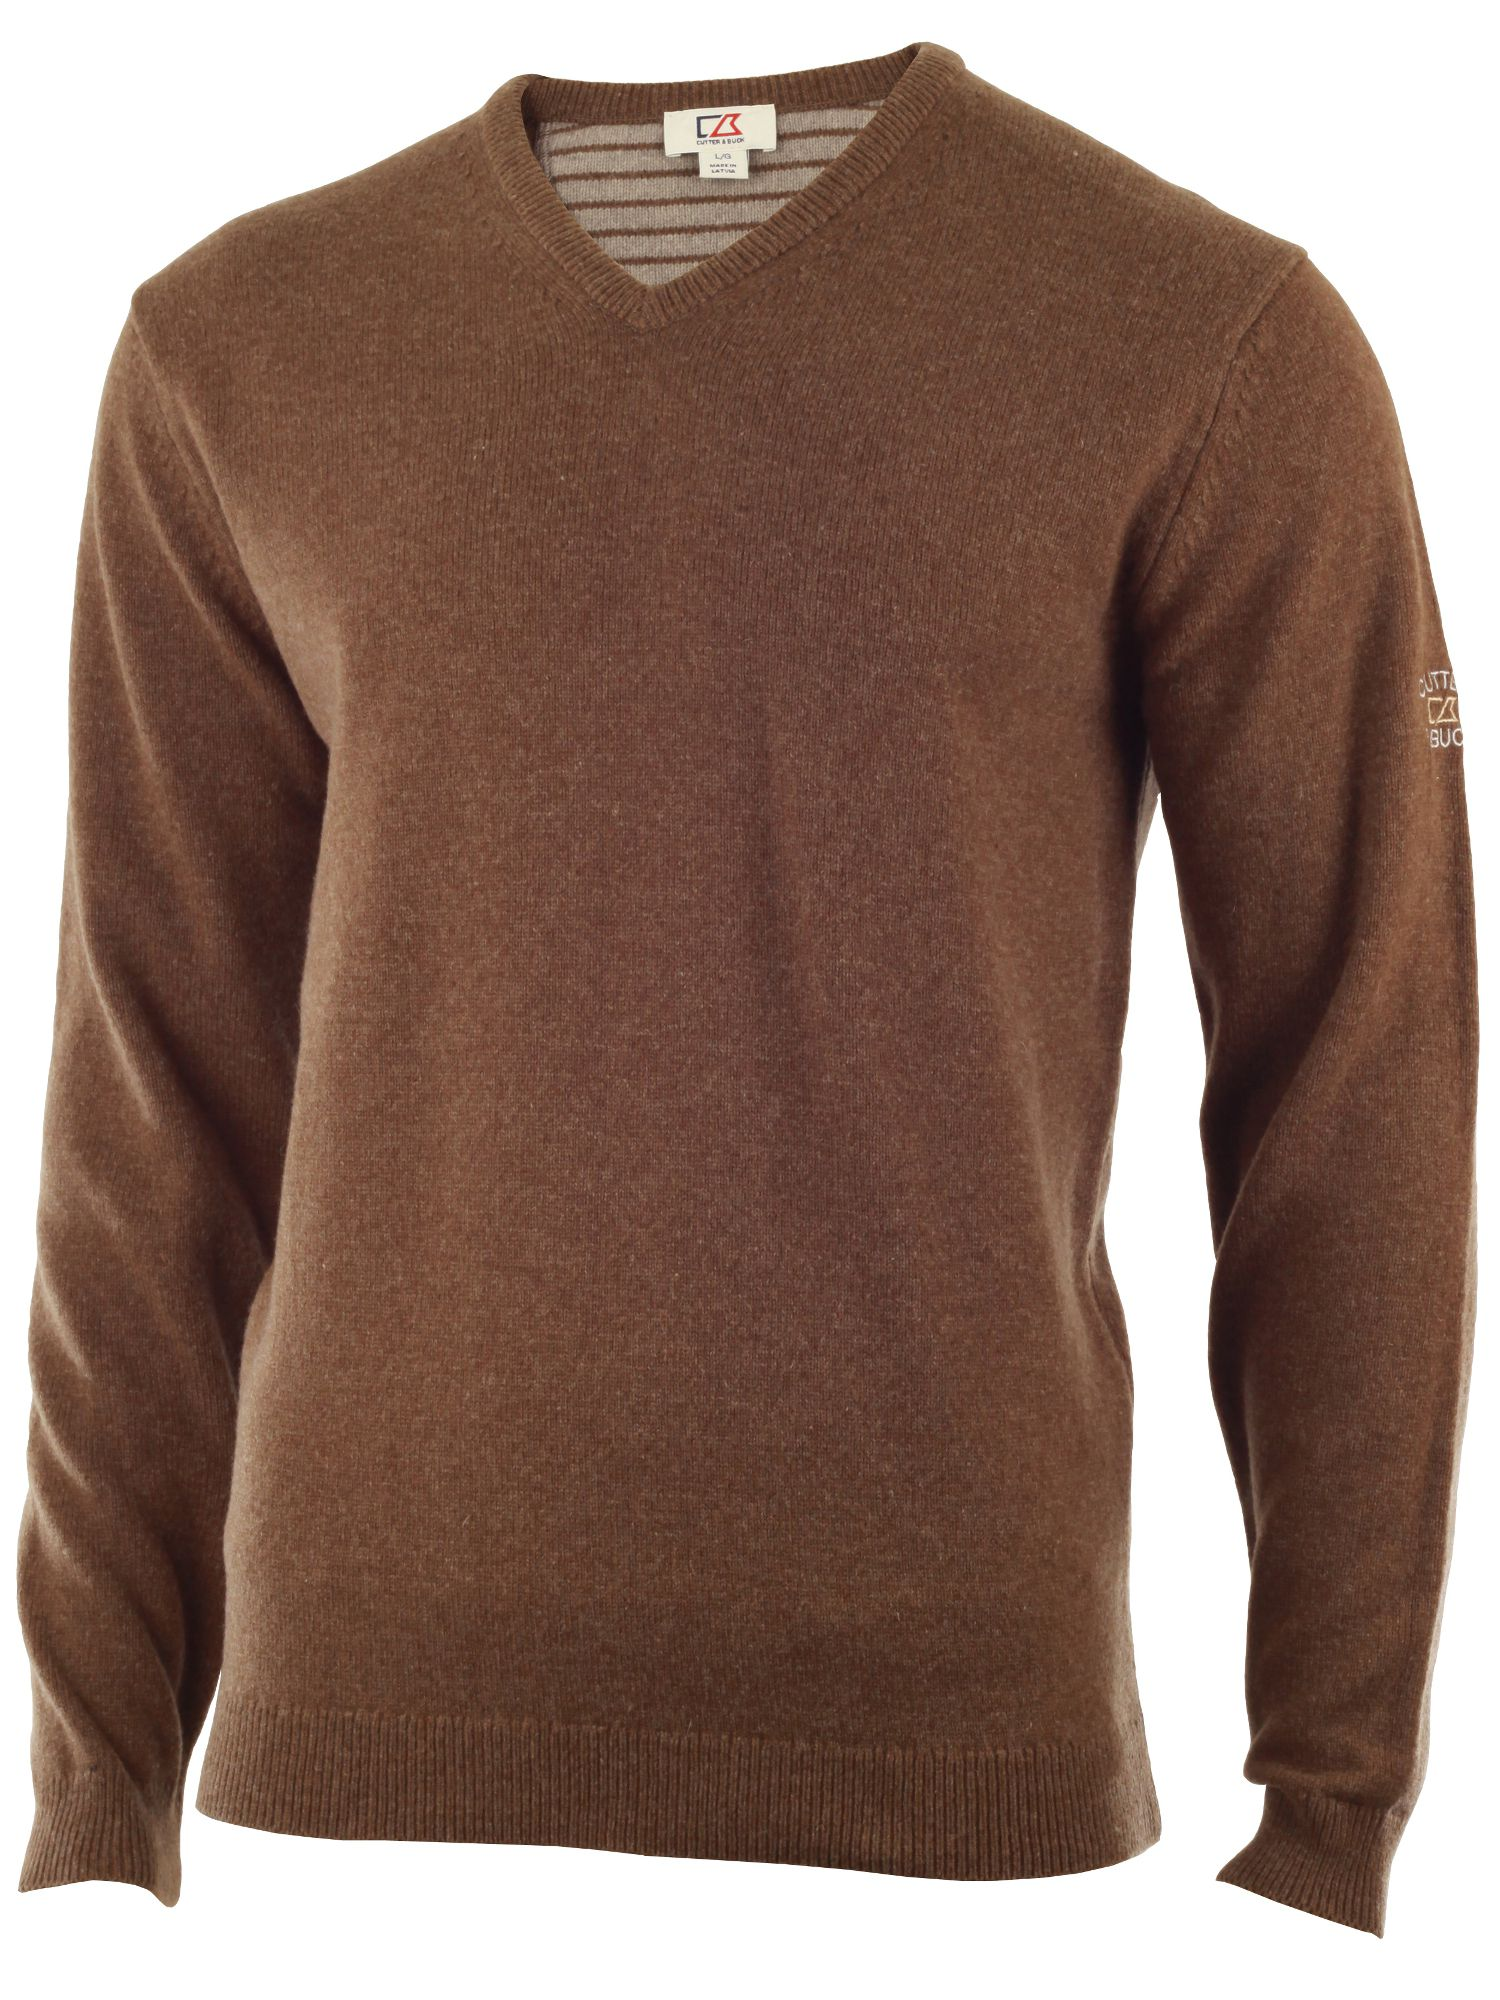 Cutter and Buck Men's Cutter and Buck Lambswool v neck sweater, Brown